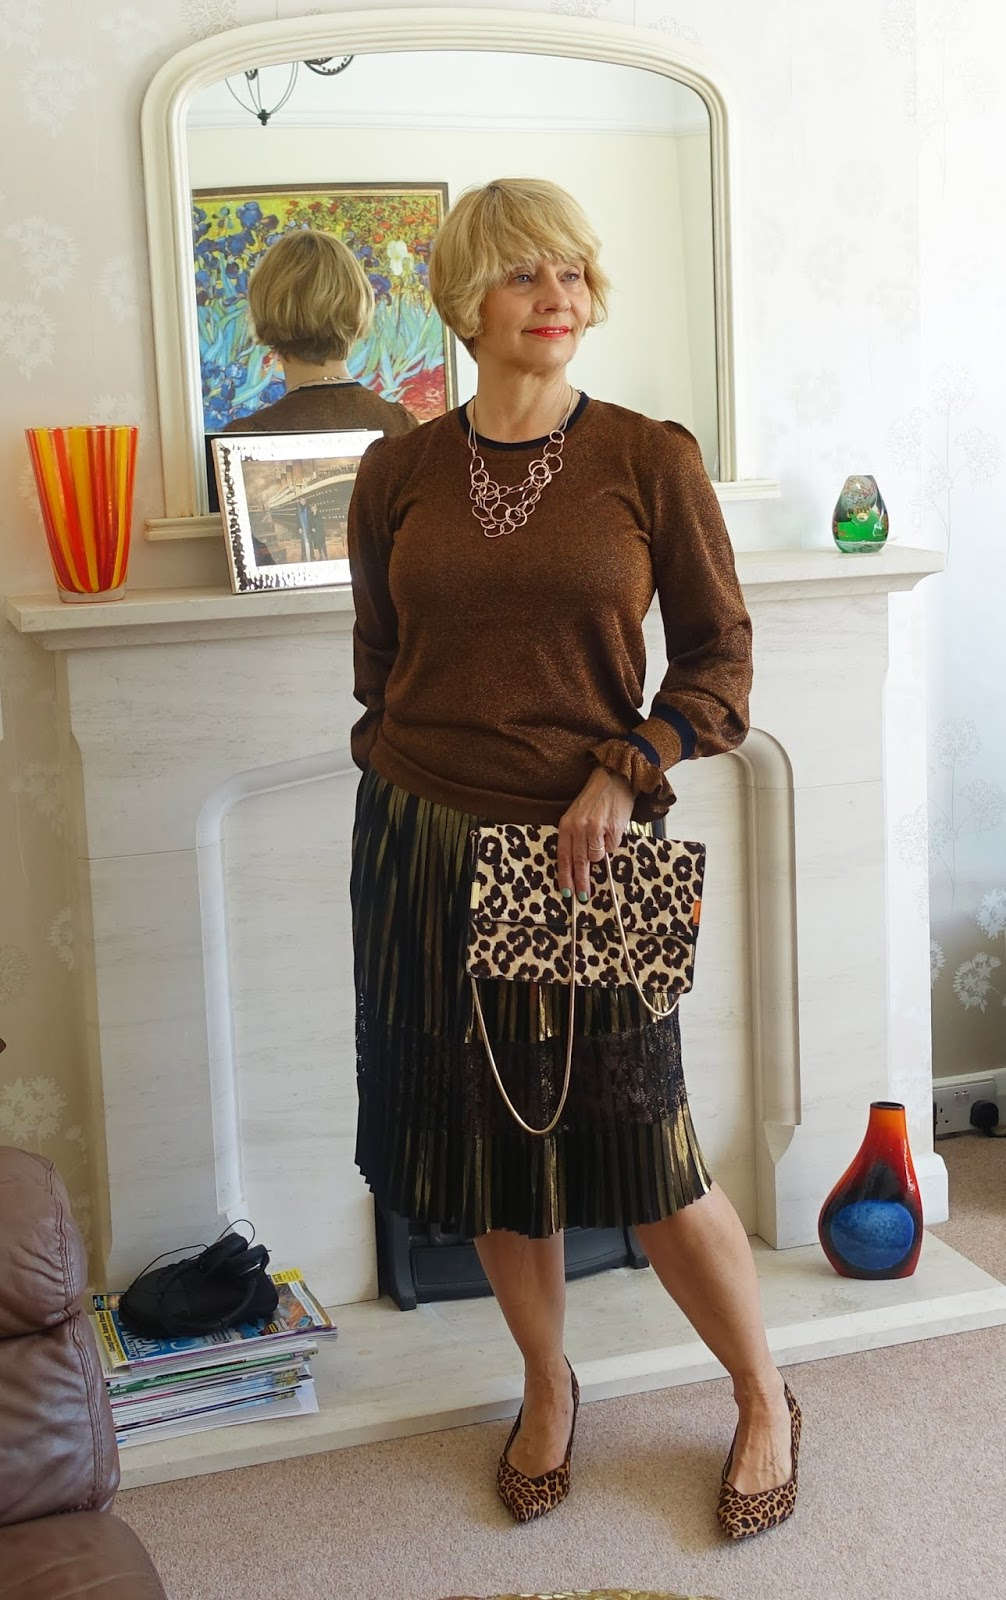 An outfit with transitional qualities for evening stand out, featuring a lurex knitted top with statement sleeves and a gold and black lurex skirt with leopard print accessories.